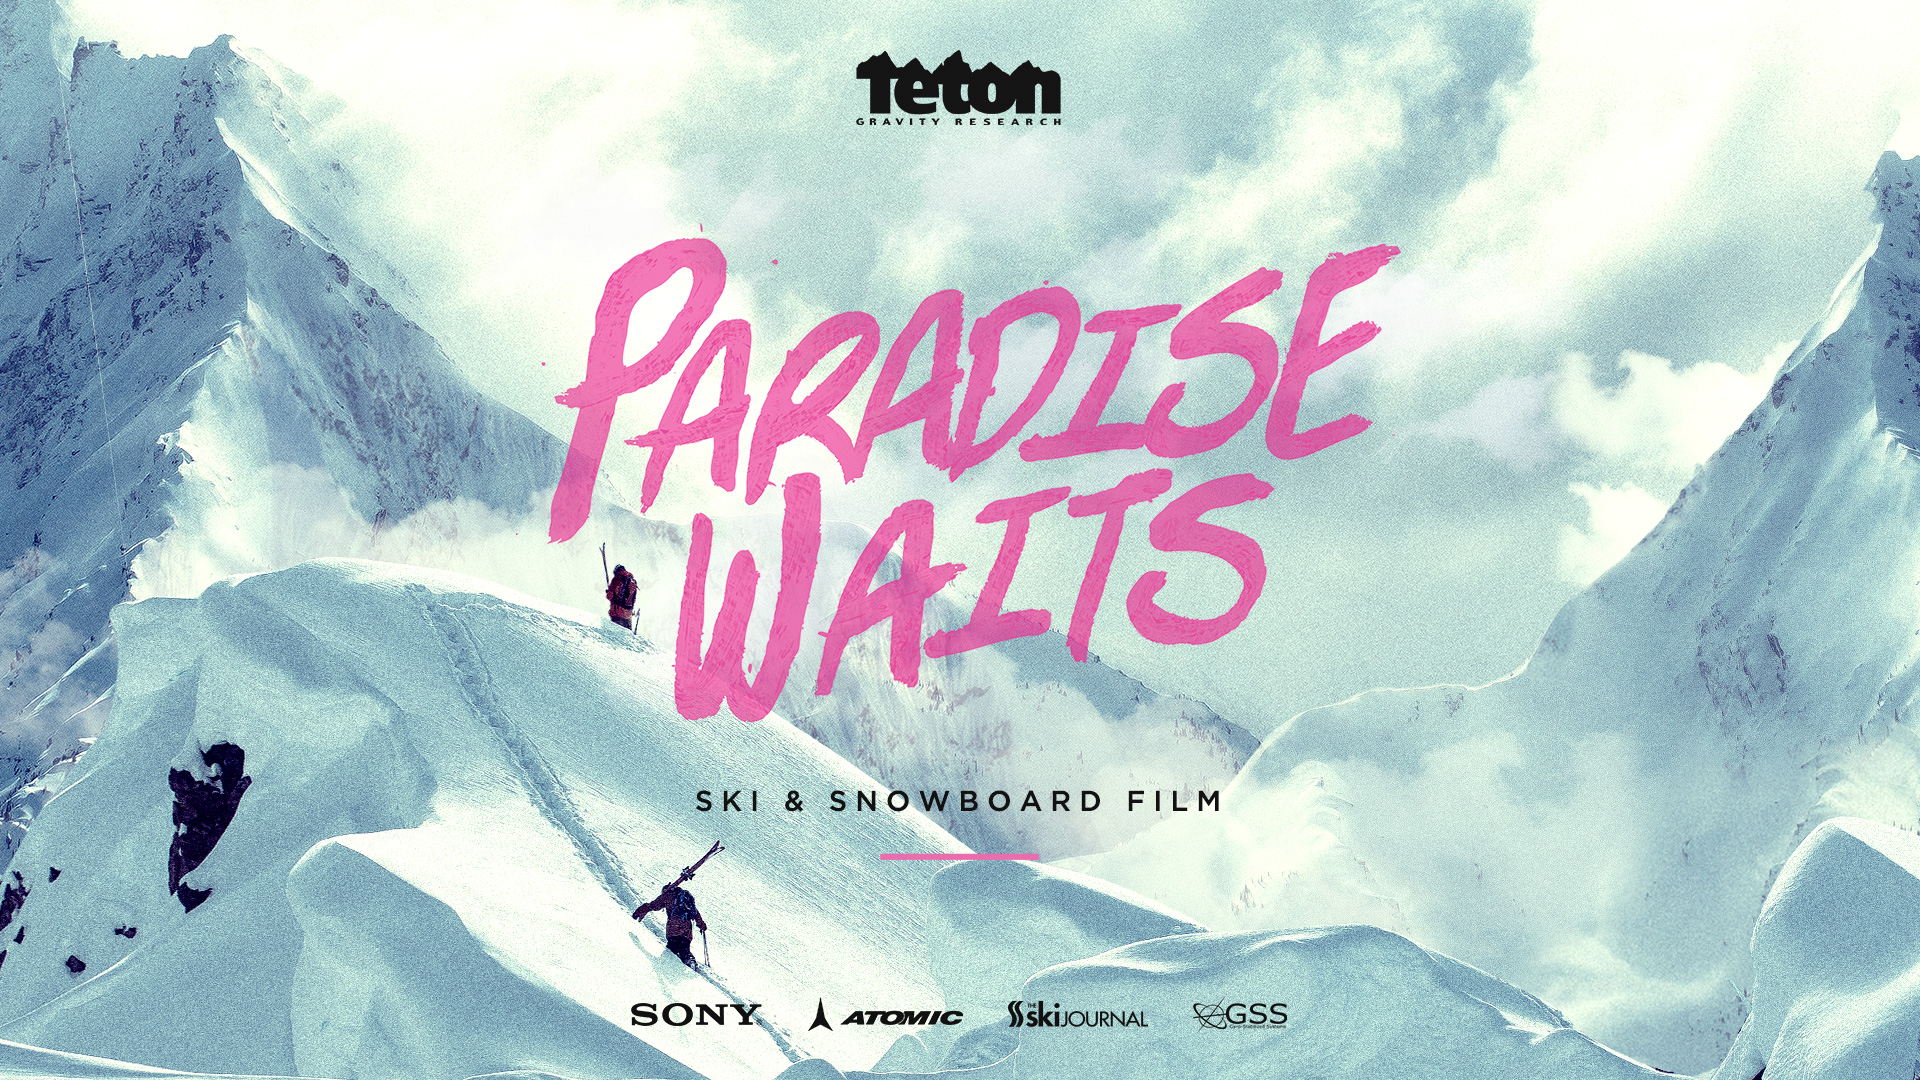 Teton Gravity Research Presents Paradise Waits DVD/Blu-Ray Combo Pack, $30